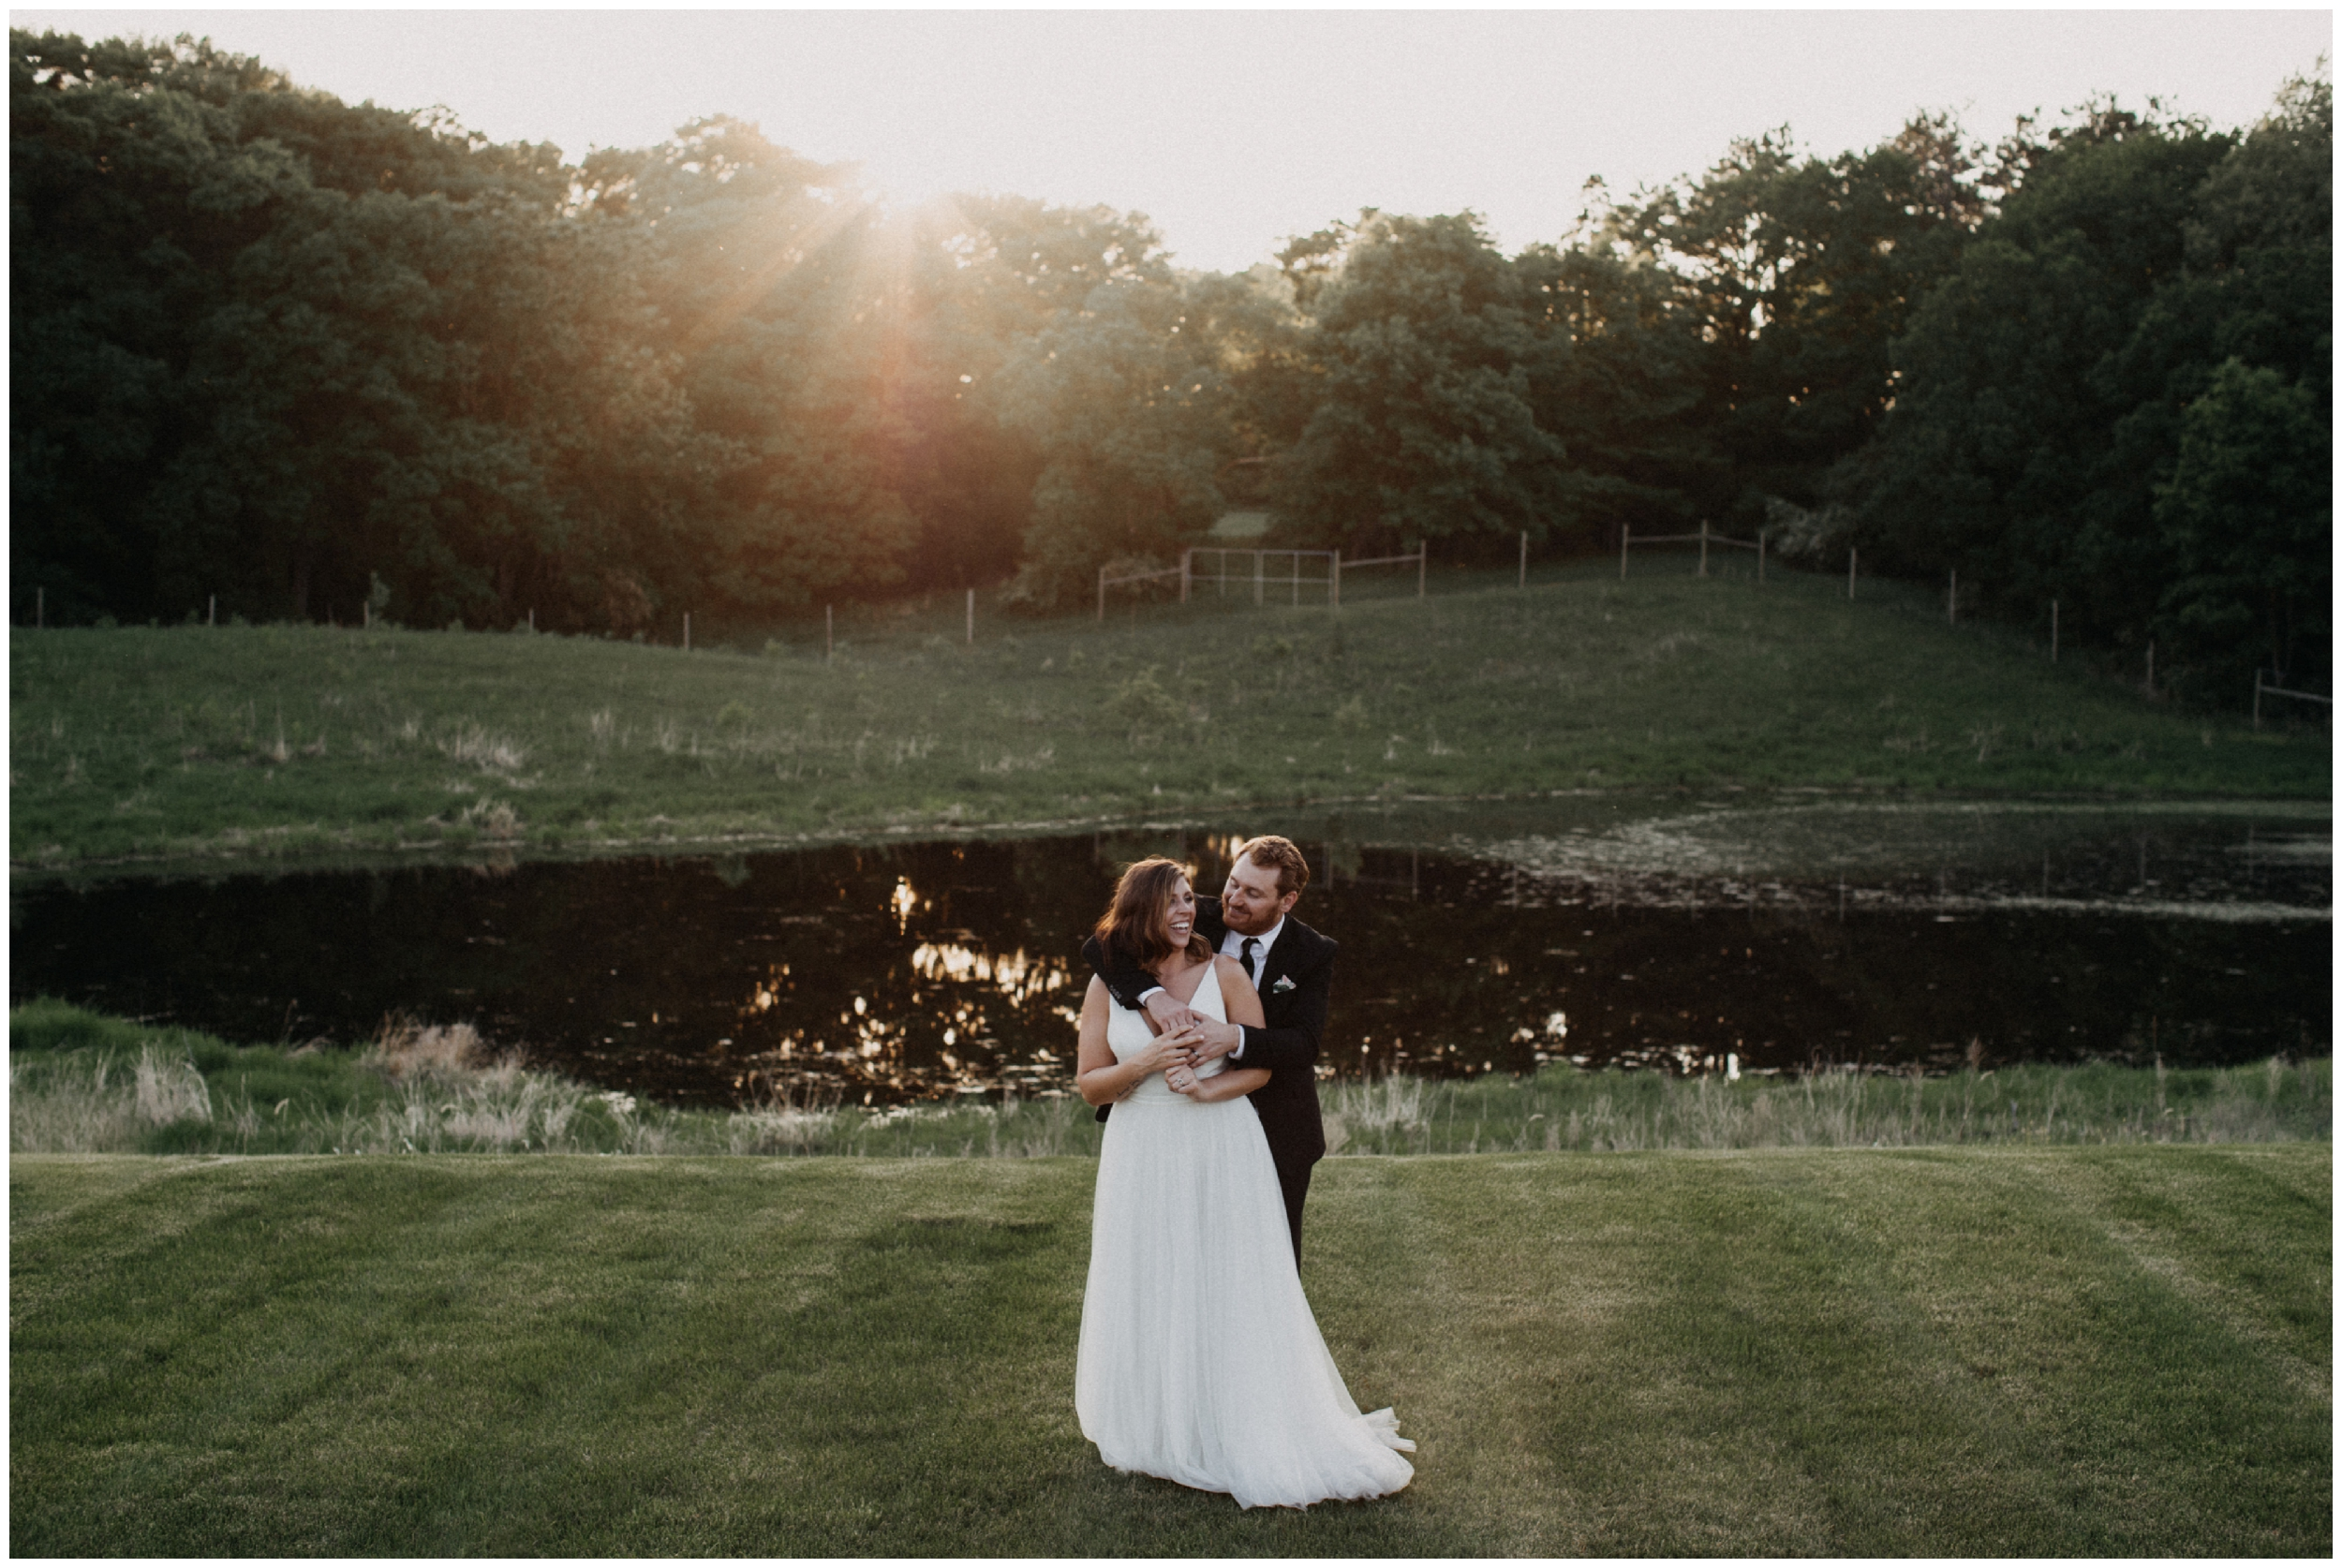 Romantic summer wedding at 7 vines winery